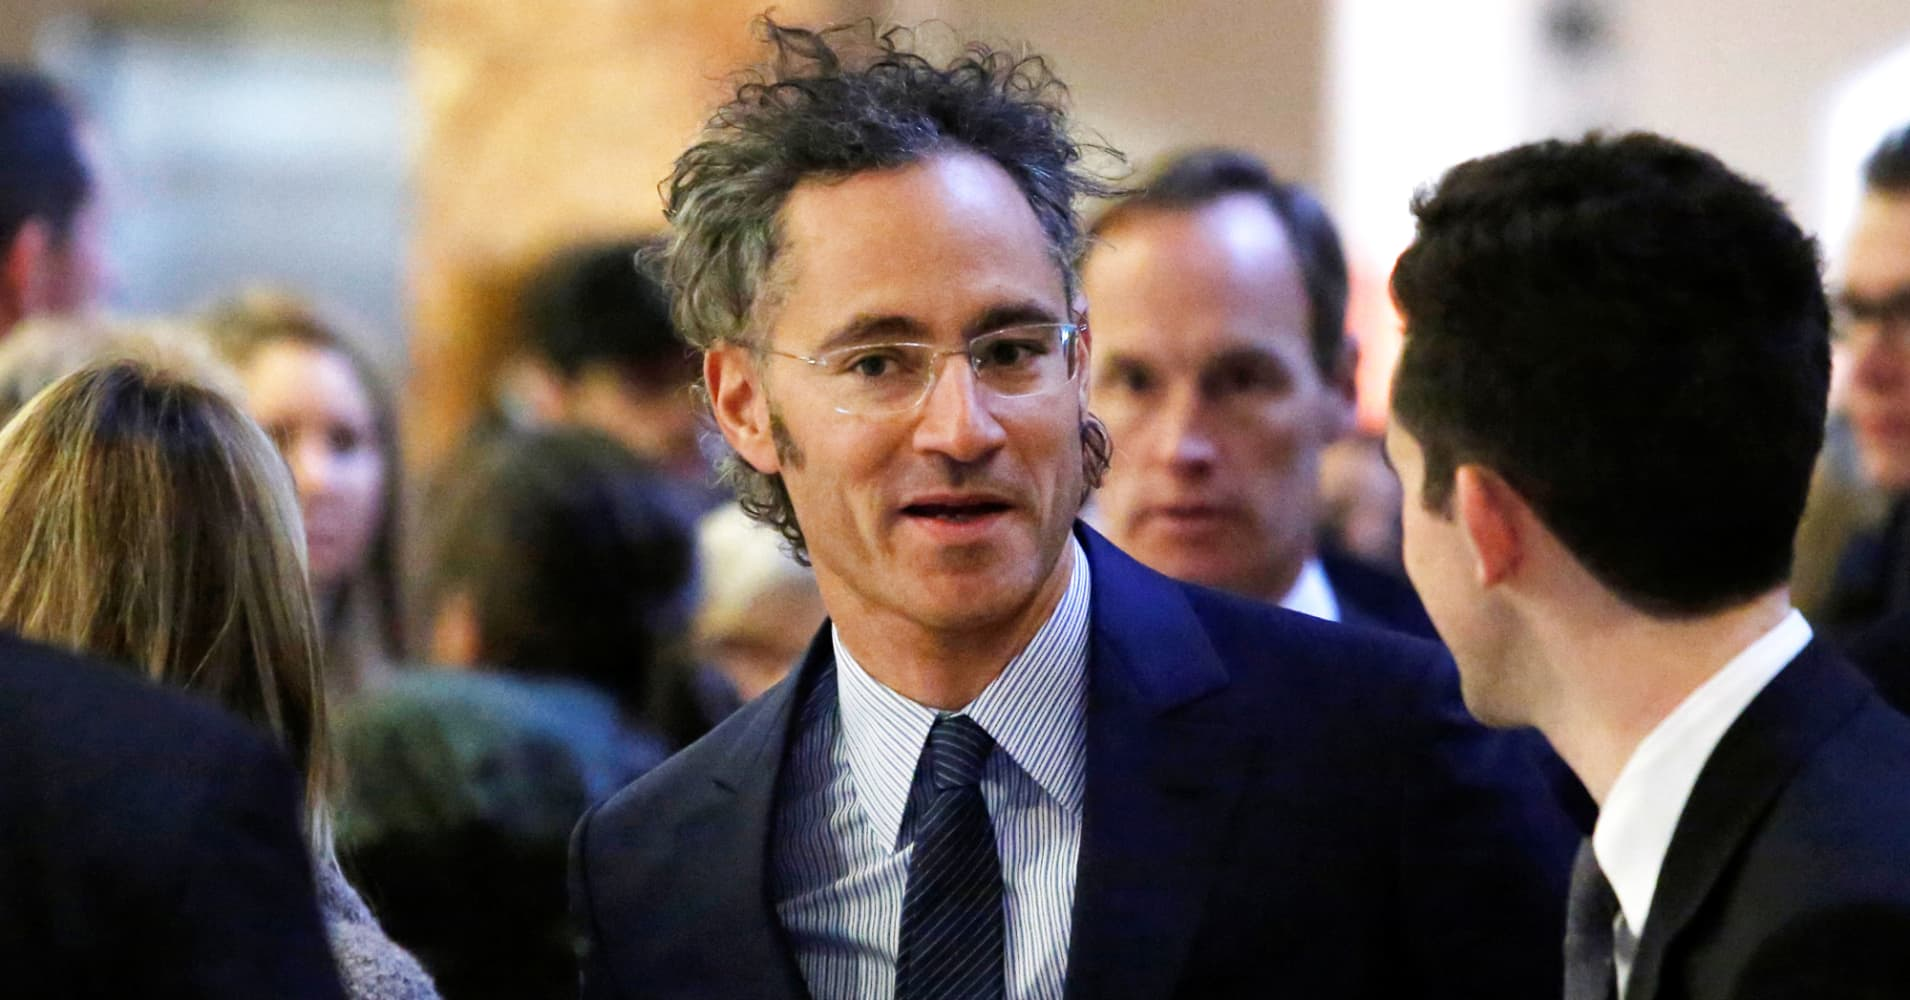 Palantir blocked its investors from selling their shares, lawsuit claims